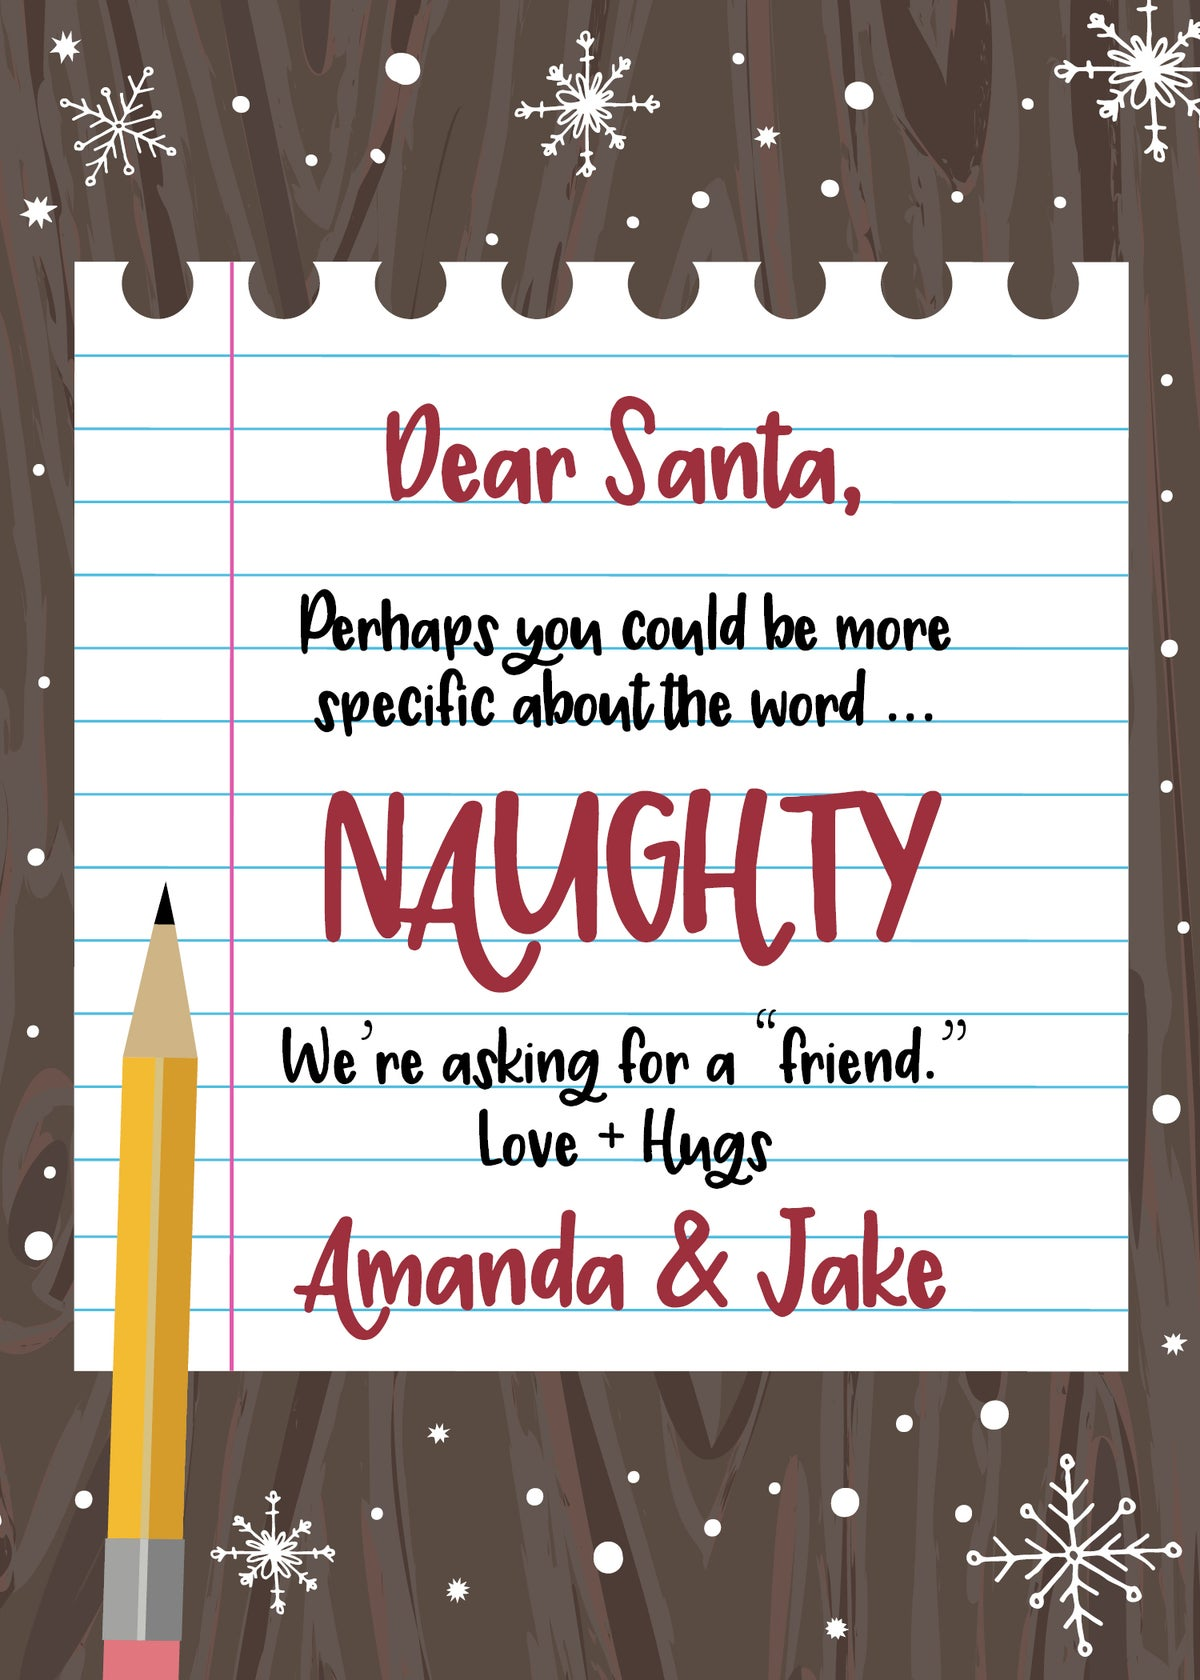 Dear Santa - About the word Naughty Chrismtas Card